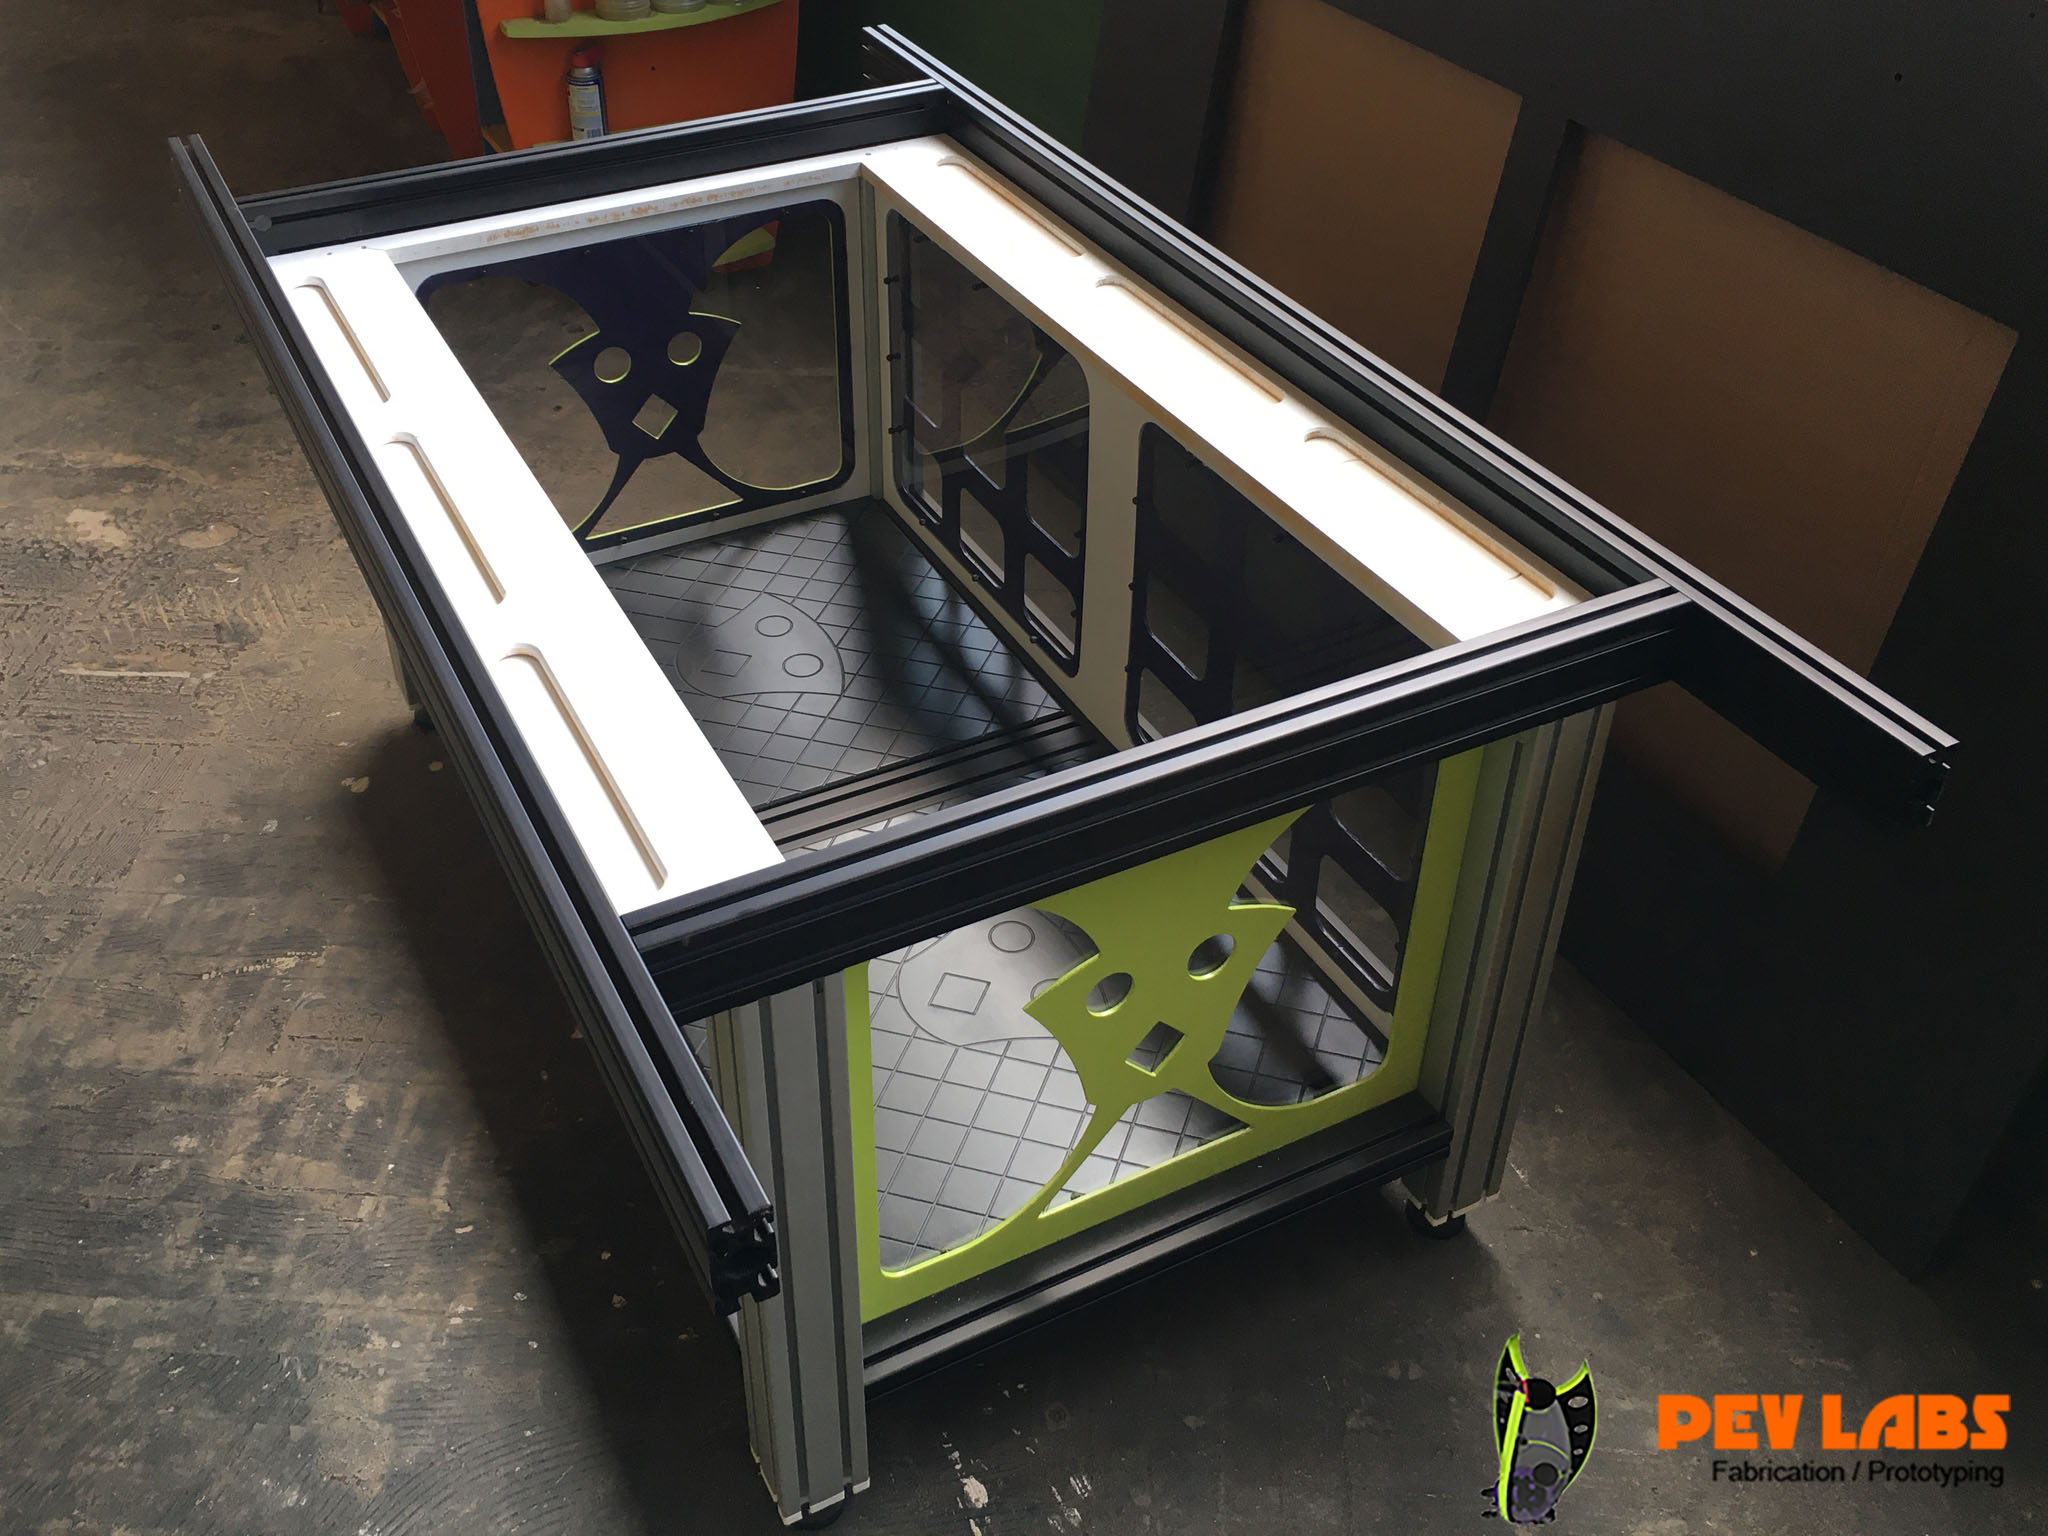 Aluminum Extrusion Custom Cabinet for Co2 Laser Build